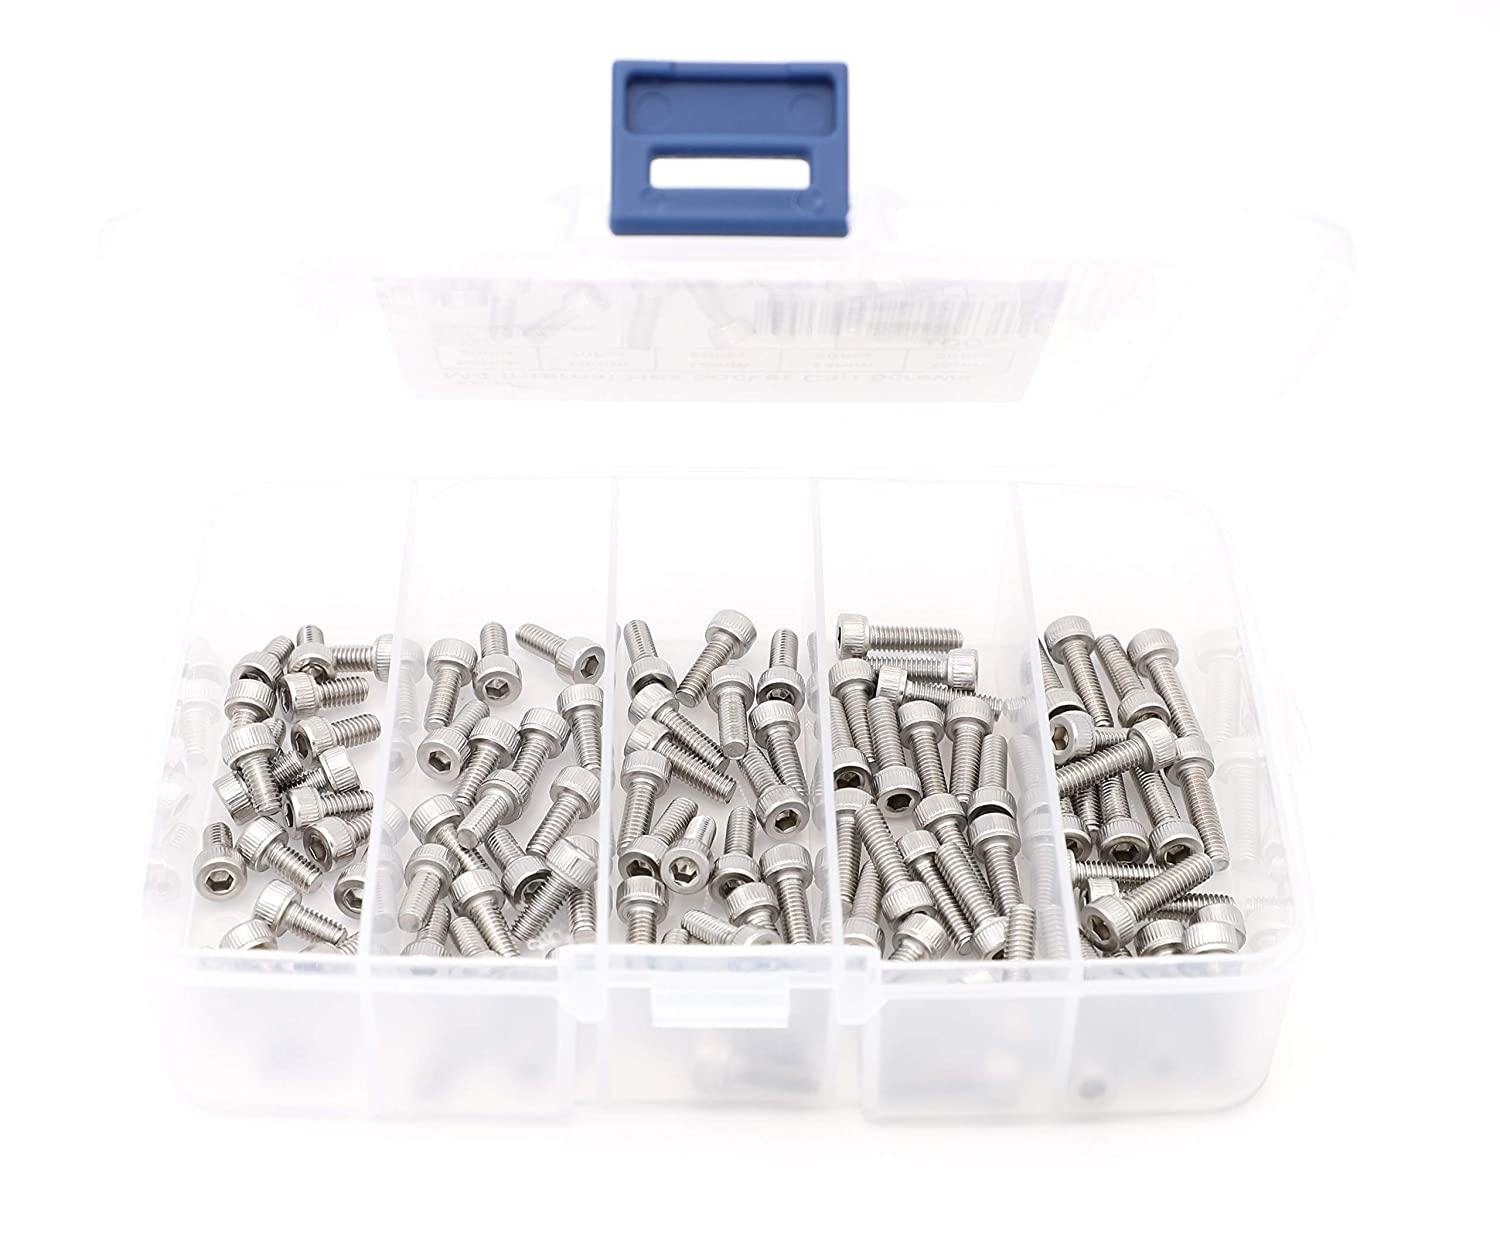 iExcell 100 Pcs M4 x 8mm//10mm//12mm//14mm//16mm Stainless Steel 304 Hex Socket Head Cap Screws Bolts Kit